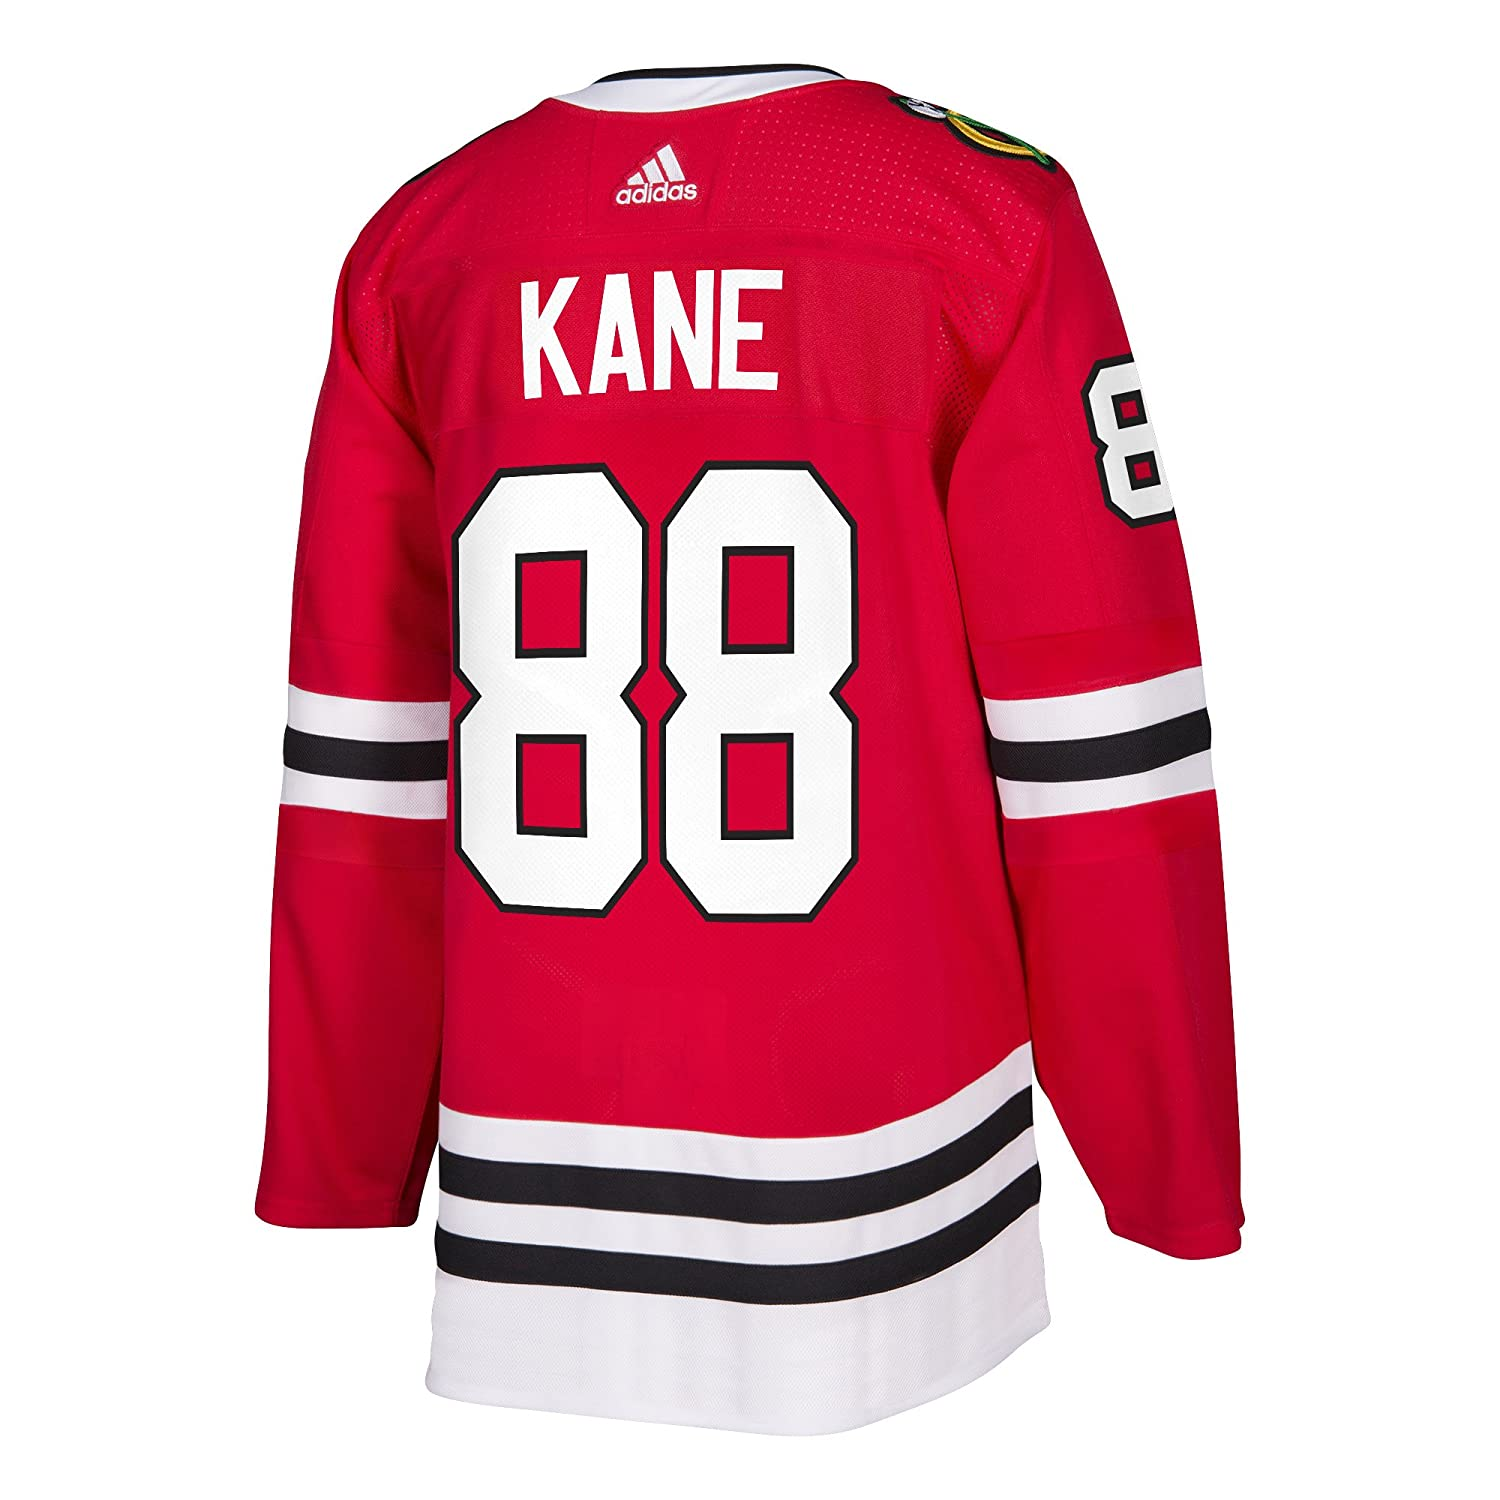 huge discount 49b5e b5138 adidas Patrick Kane Chicago Blackhawks Authentic Home NHL Hockey Jersey